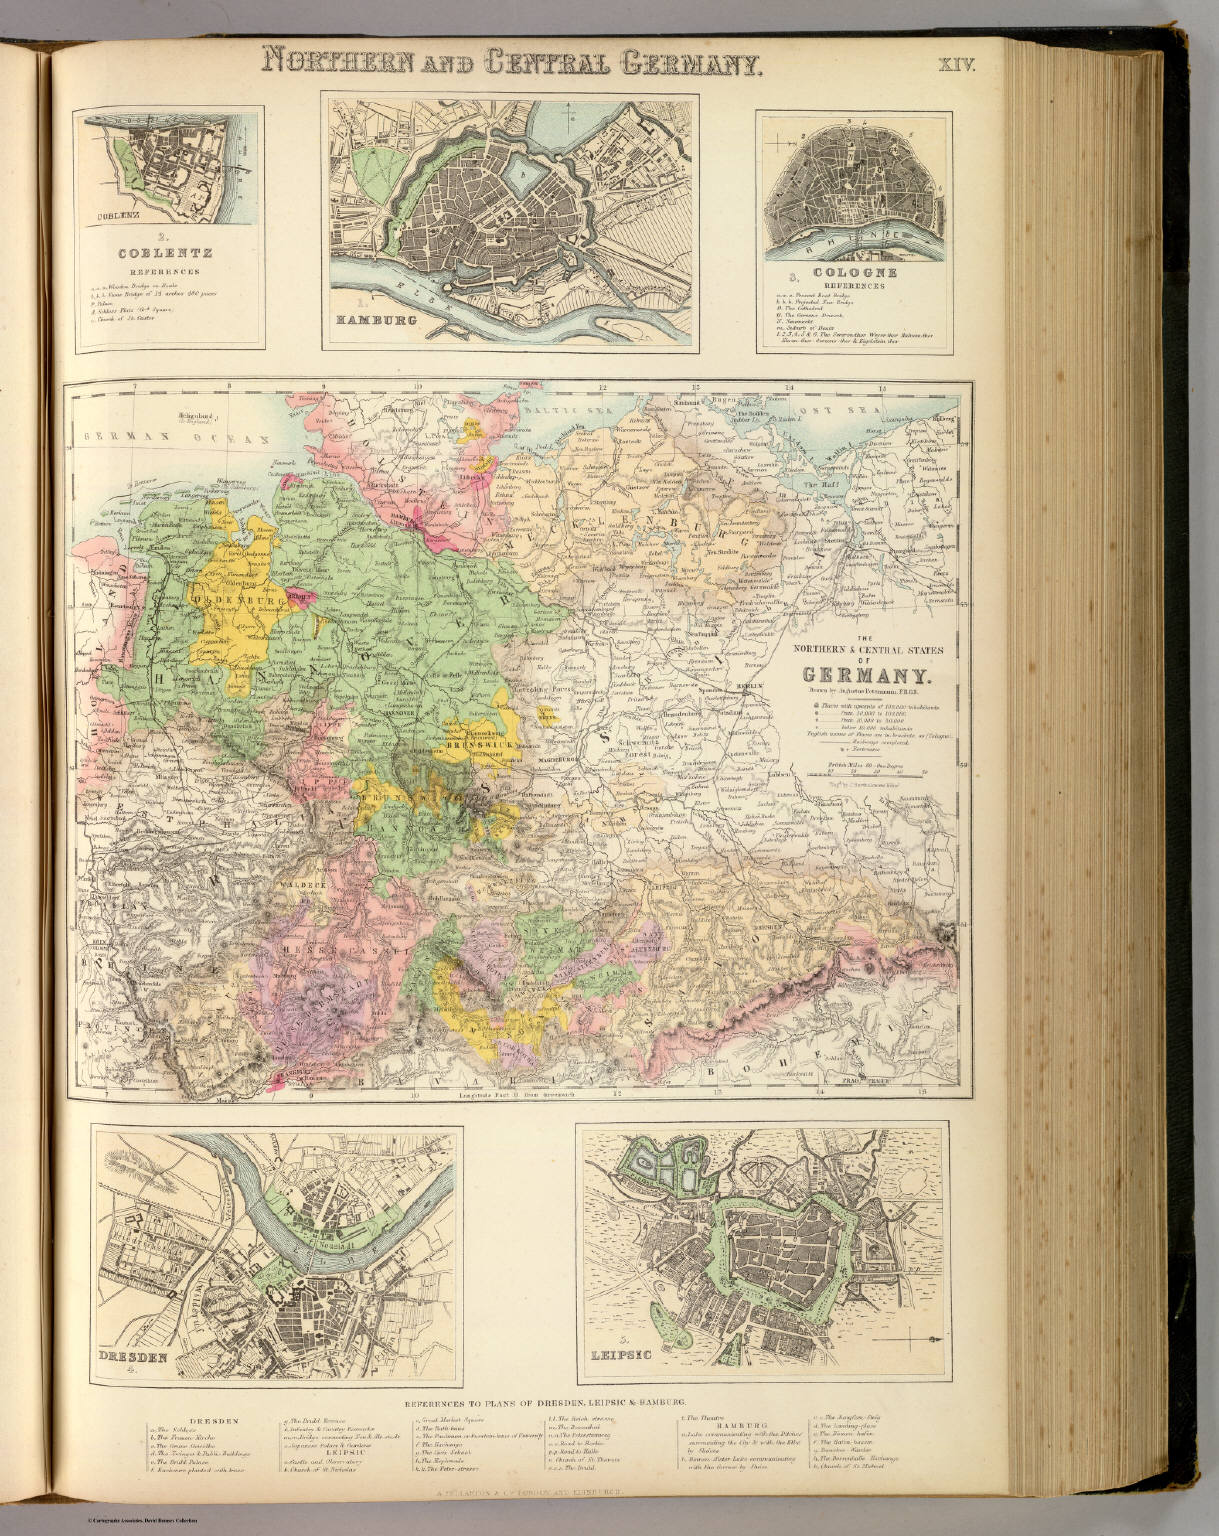 Map Of Central Germany.Northern And Central Germany David Rumsey Historical Map Collection